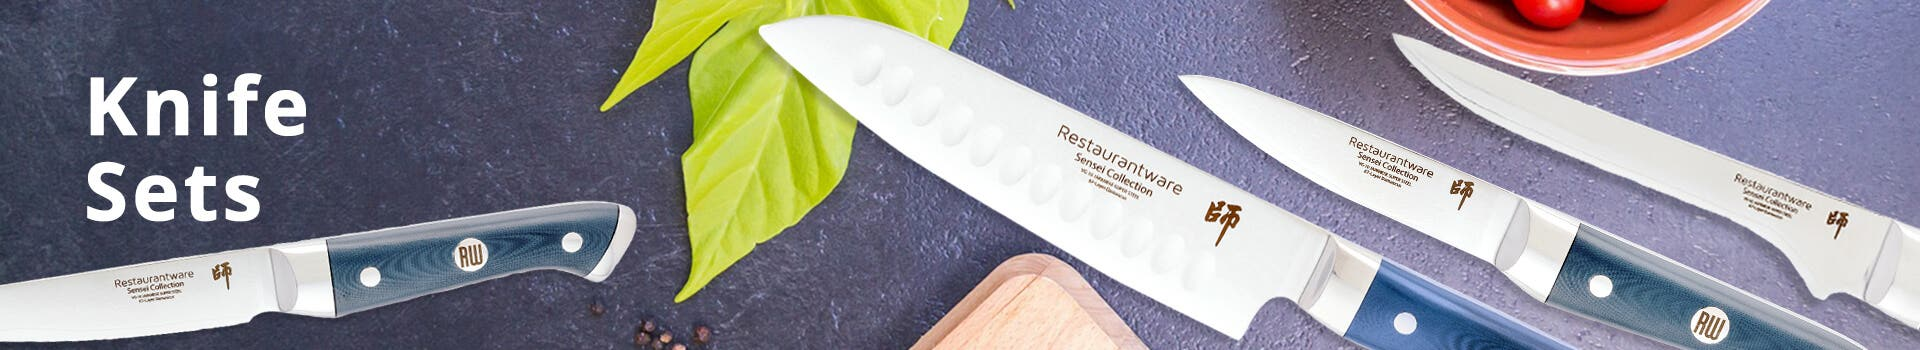 Sensei Blue Knife Sets